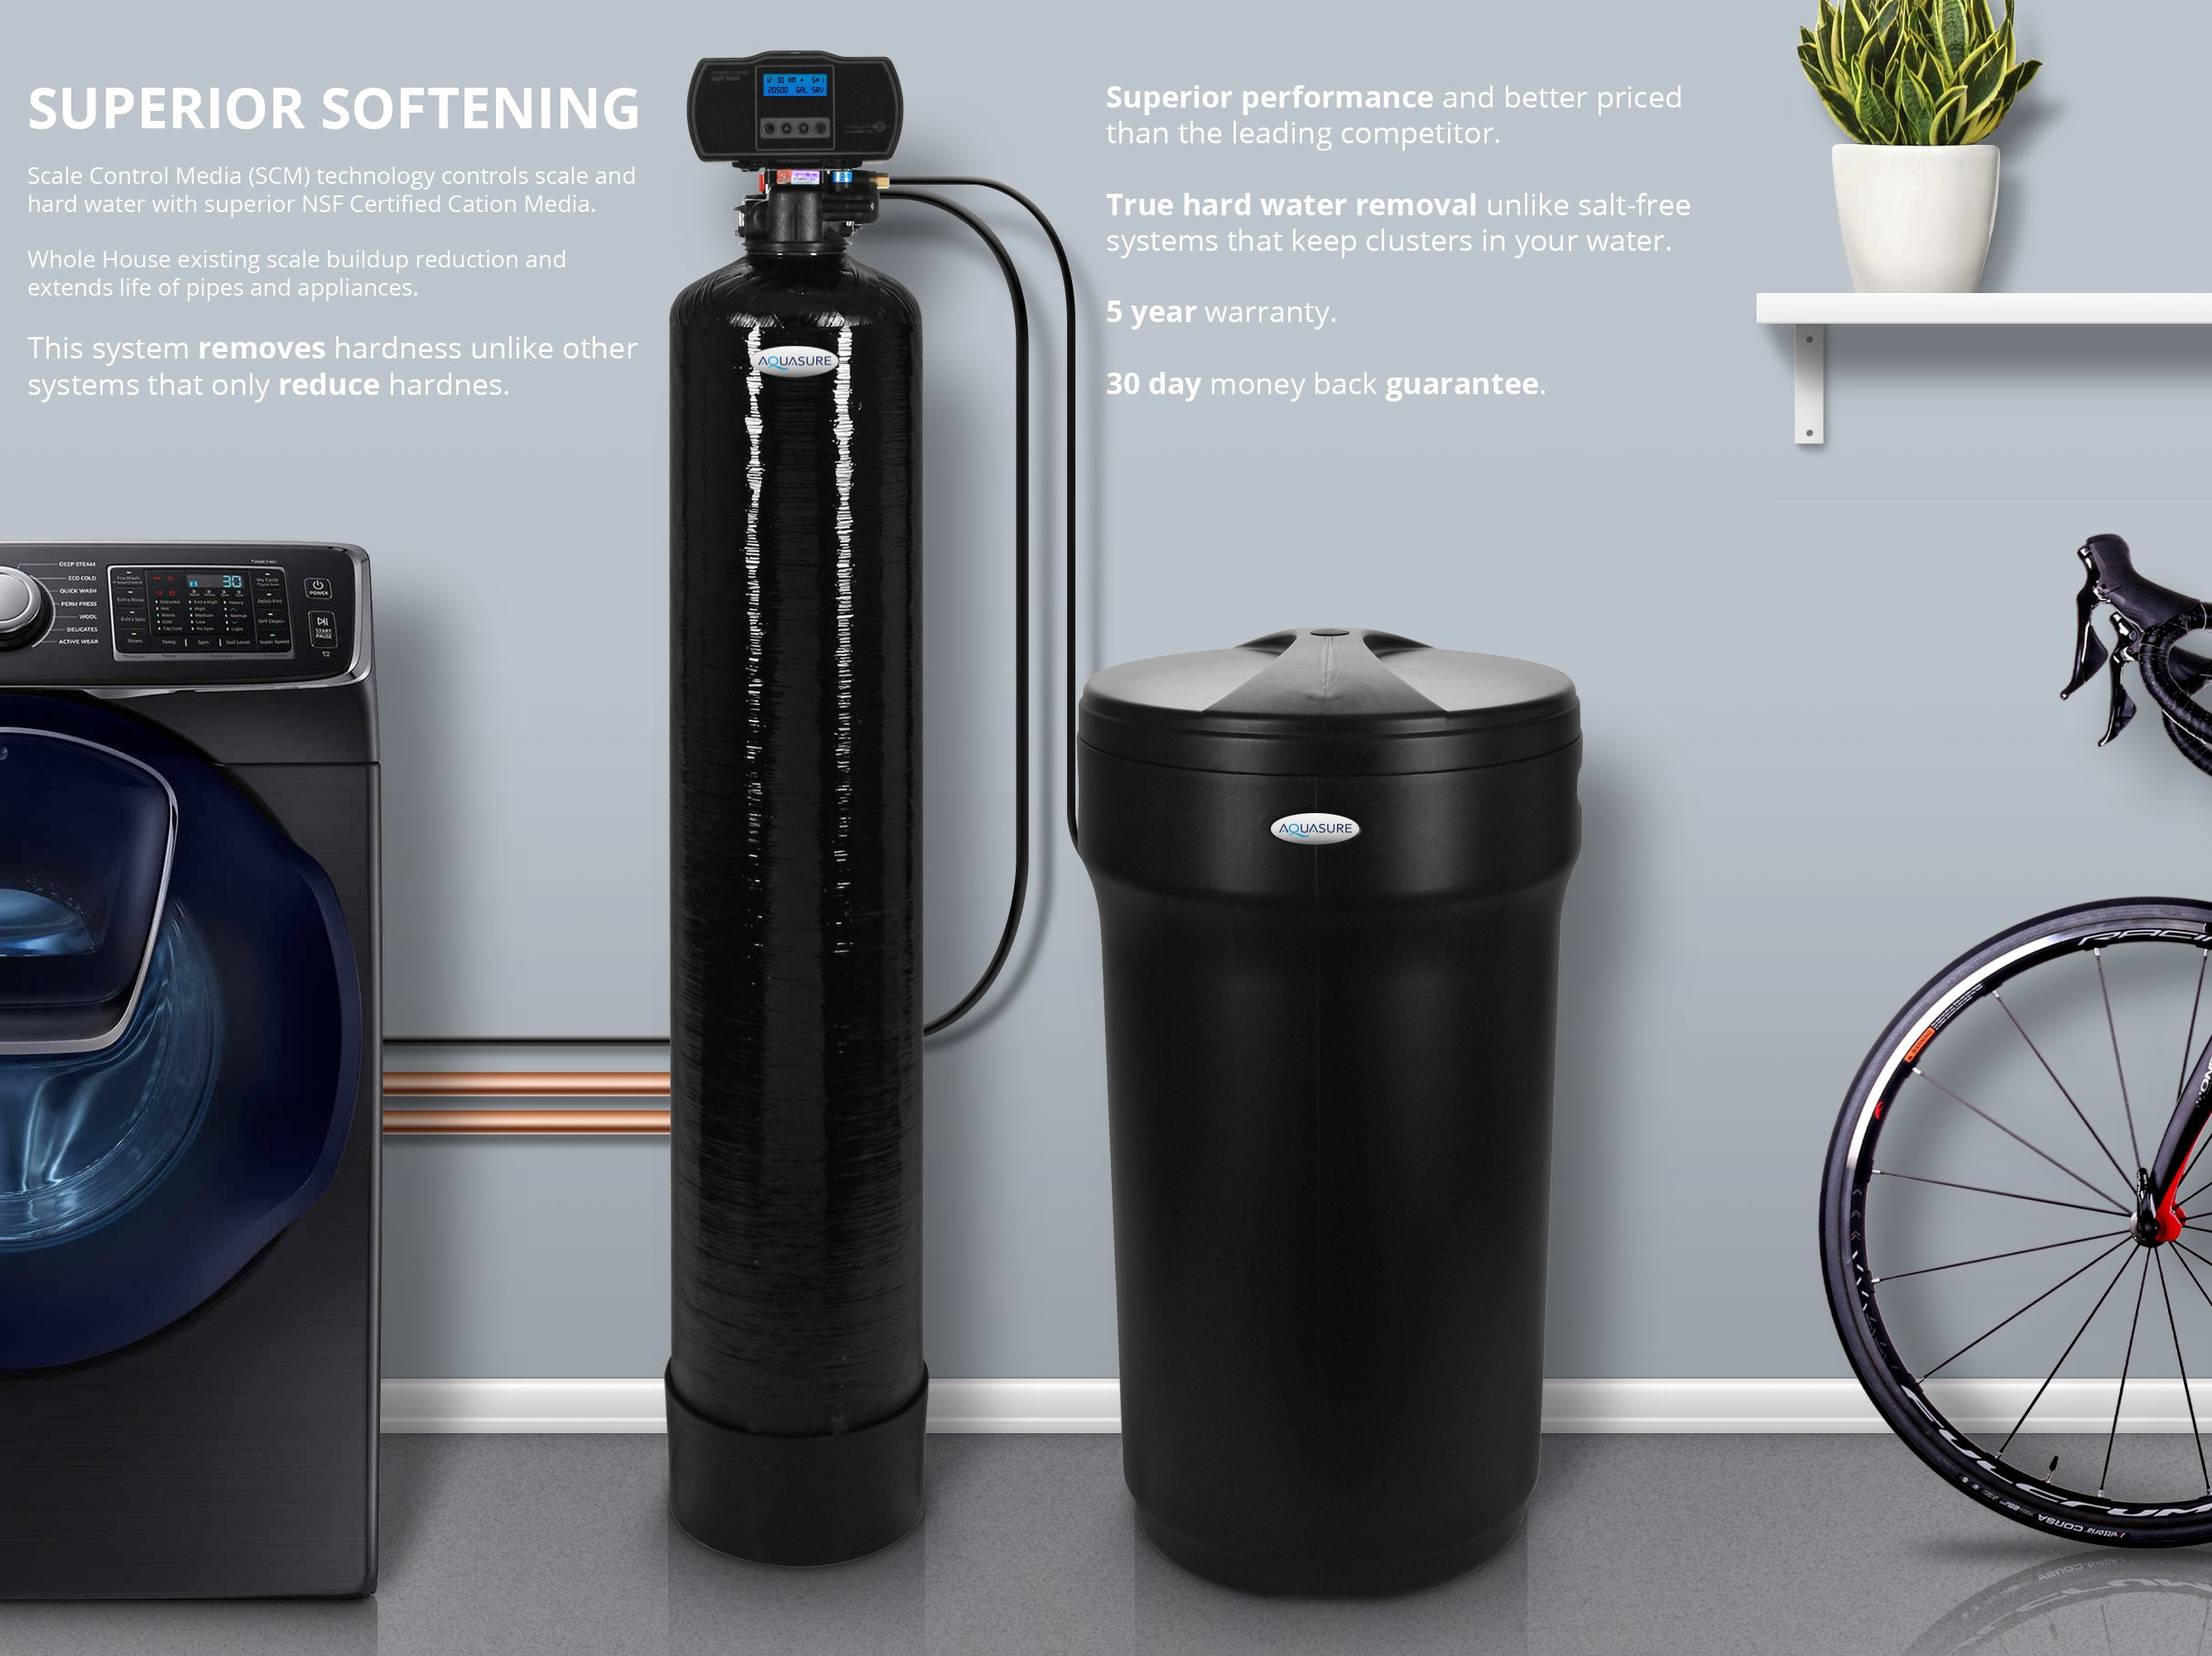 aquasure water softener system digital whole house high efficiency for 24 bathrooms